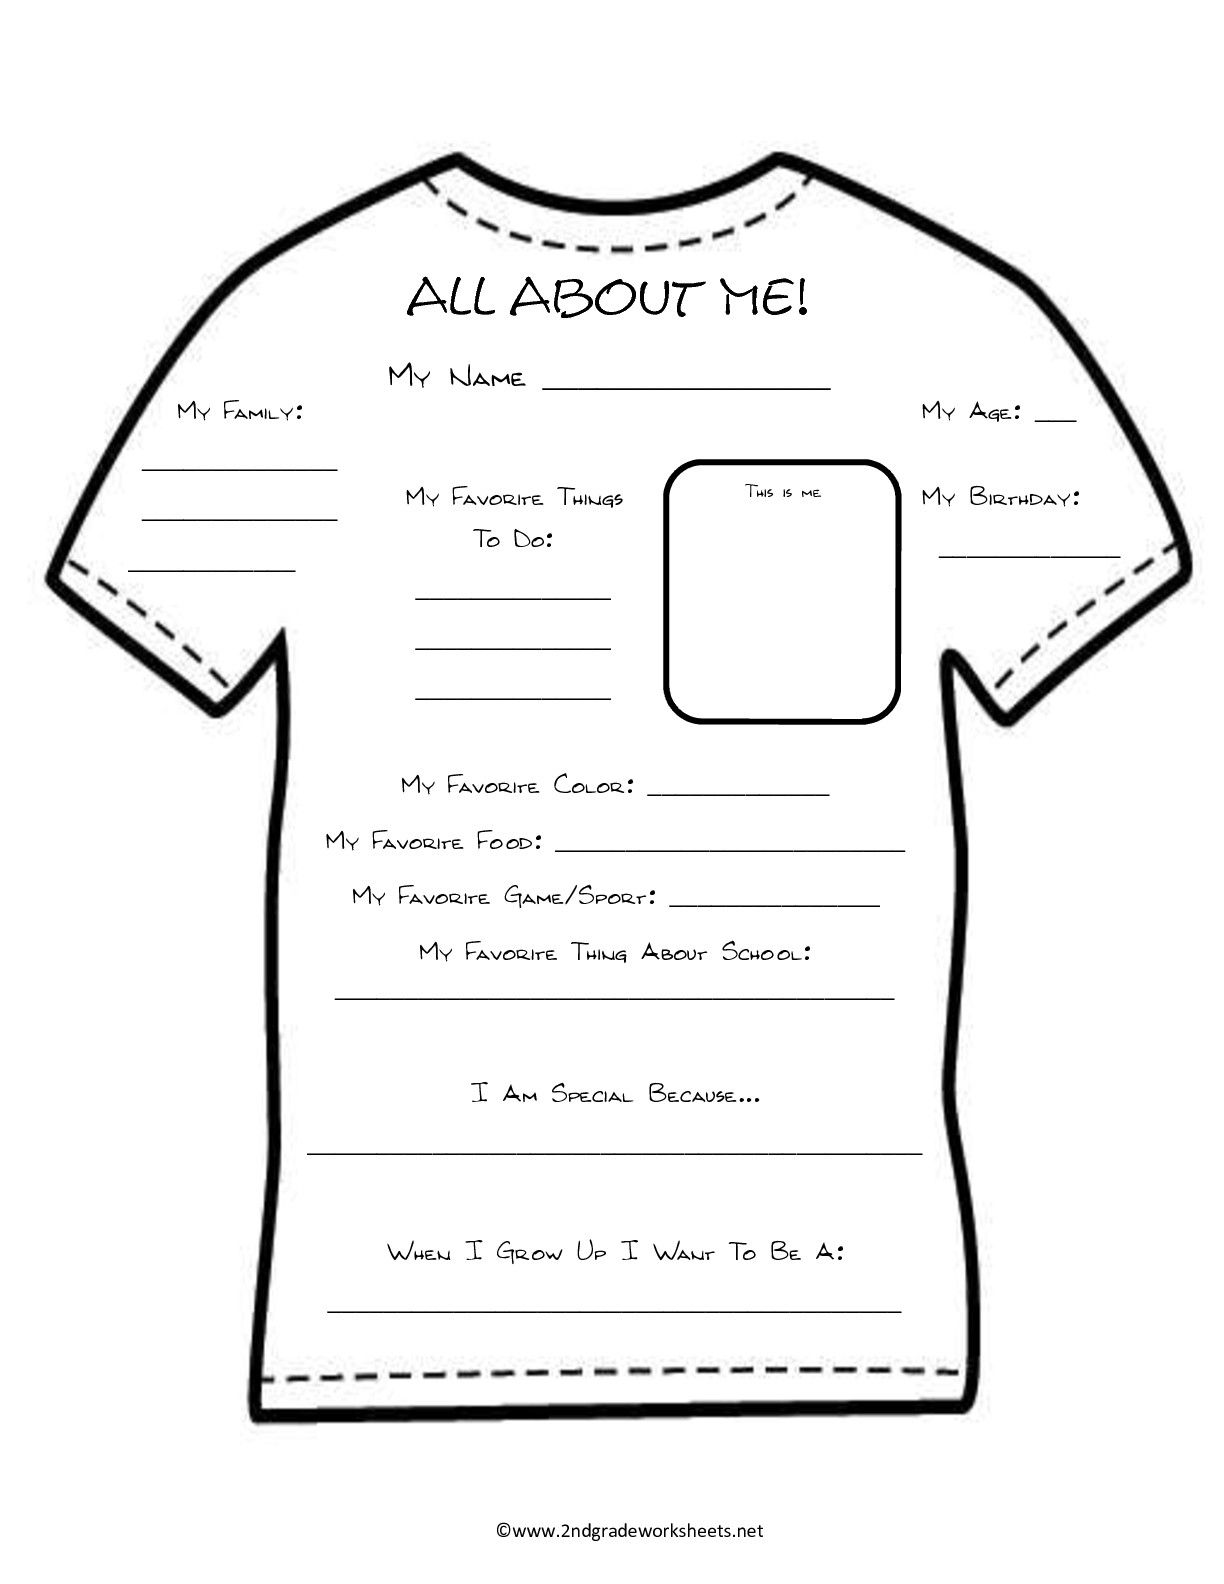 All About Me Template Worksheet